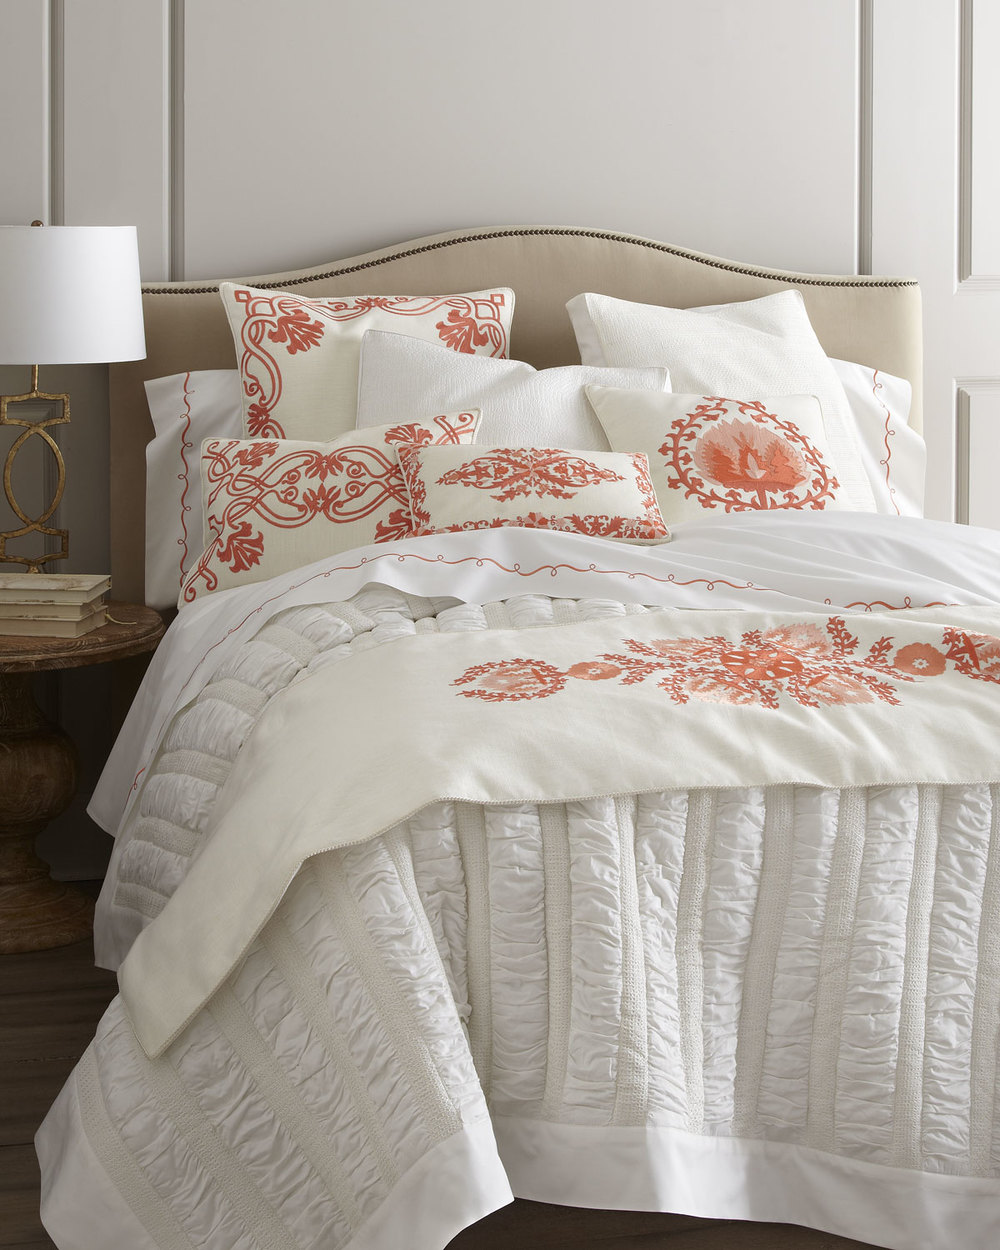 Spectacular It us no secret I um a little obsessed with bedding linens and all things sweet dreams I thought it would be fun to bring in the expert advice of a